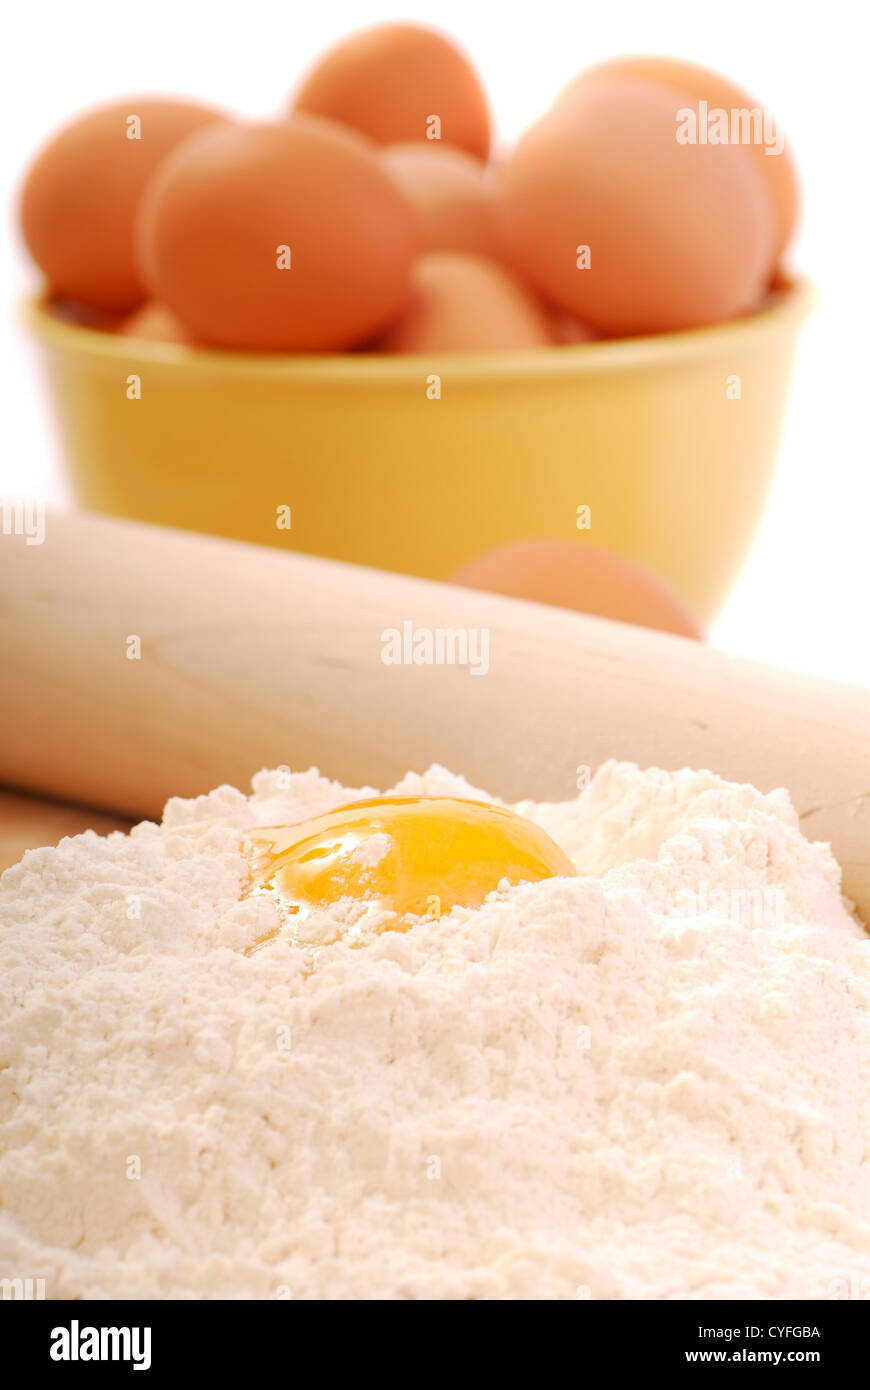 Mixing eggs and flour using the well method for making pasta Stock Photo